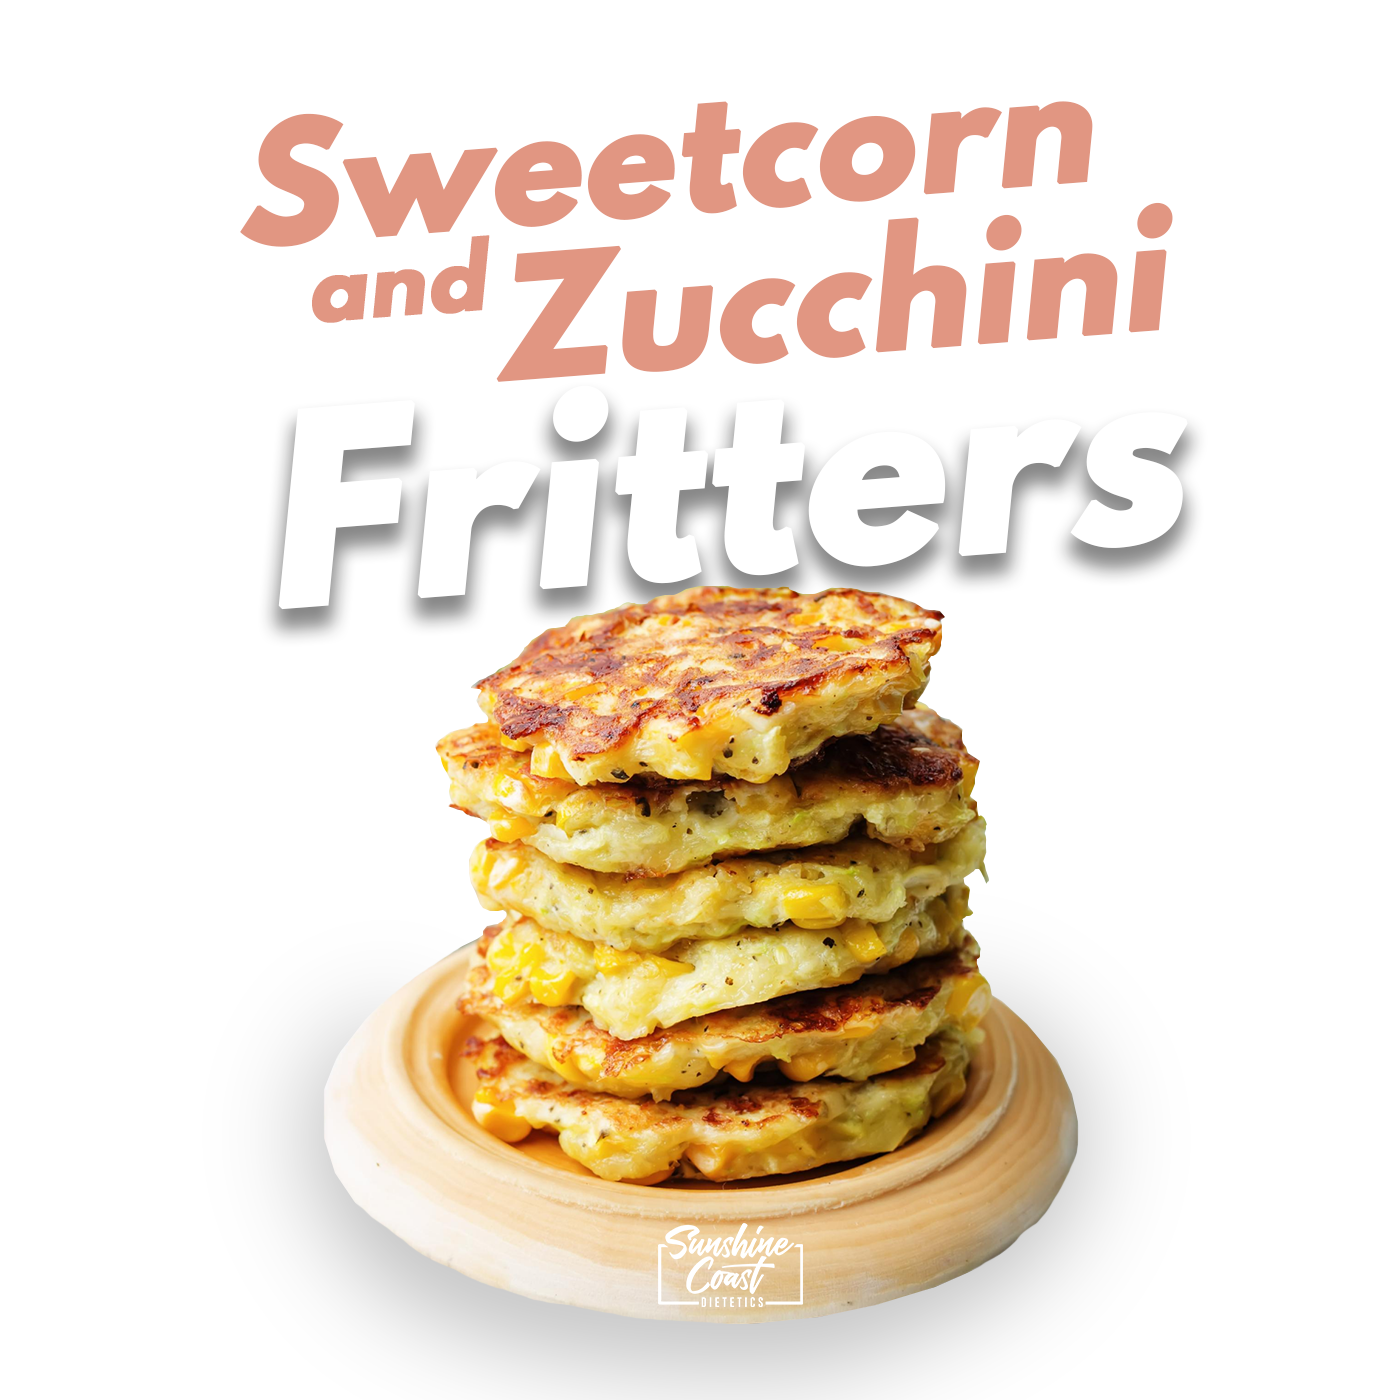 Recipe: Sweetcorn and Zucchini Fritters